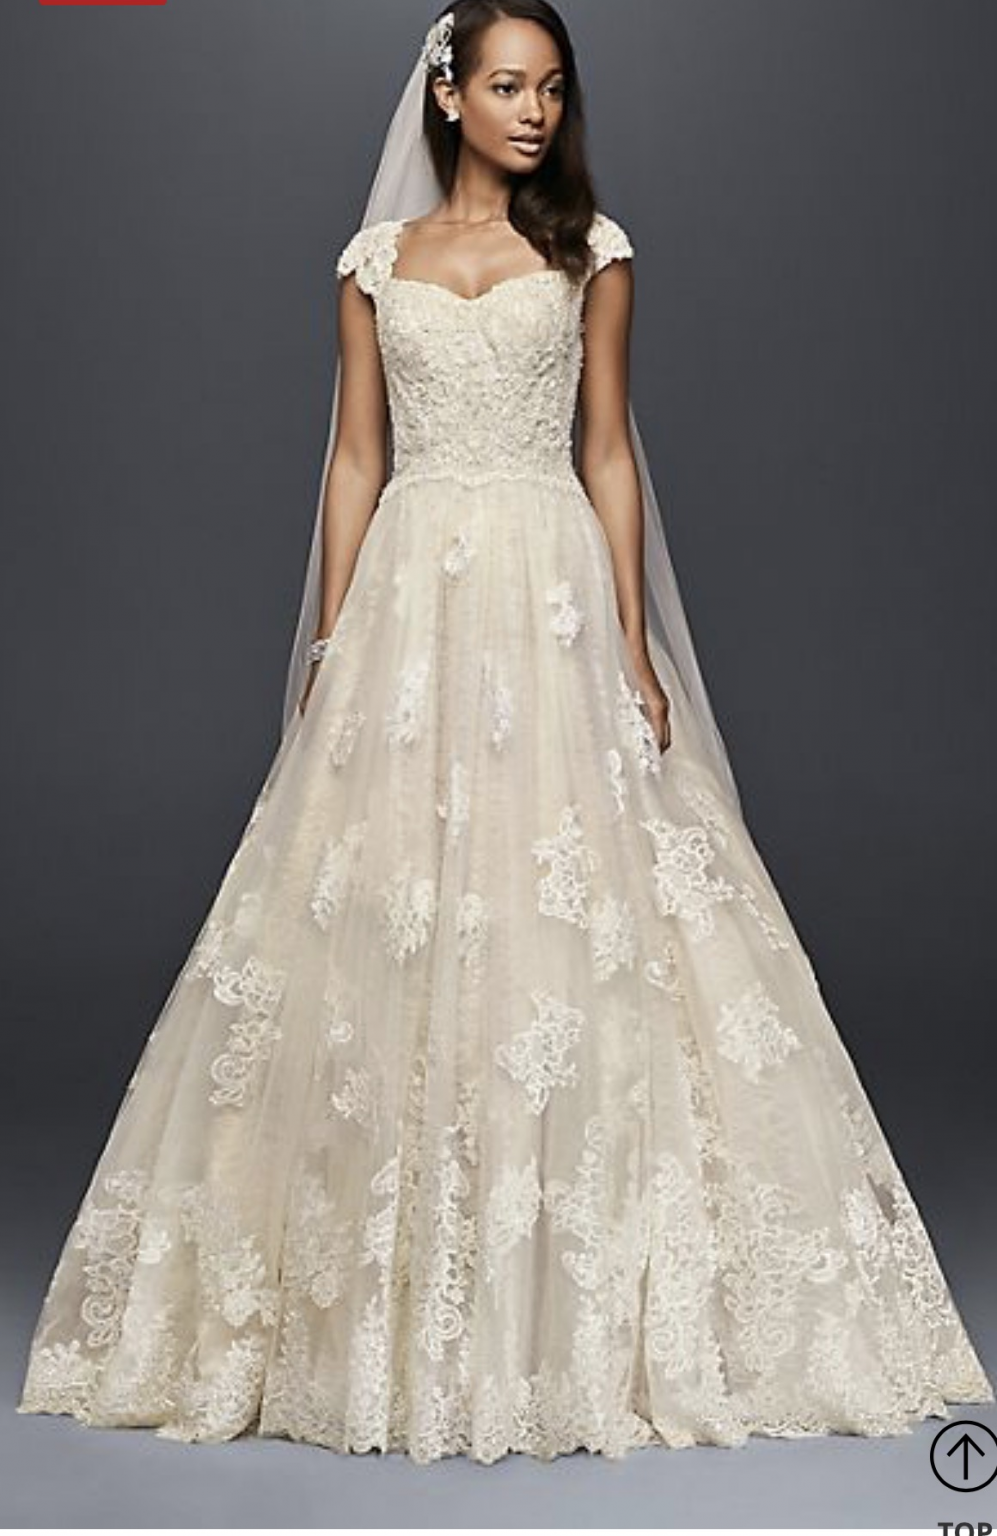 Oleg cassini cwg size new unaltered wedding